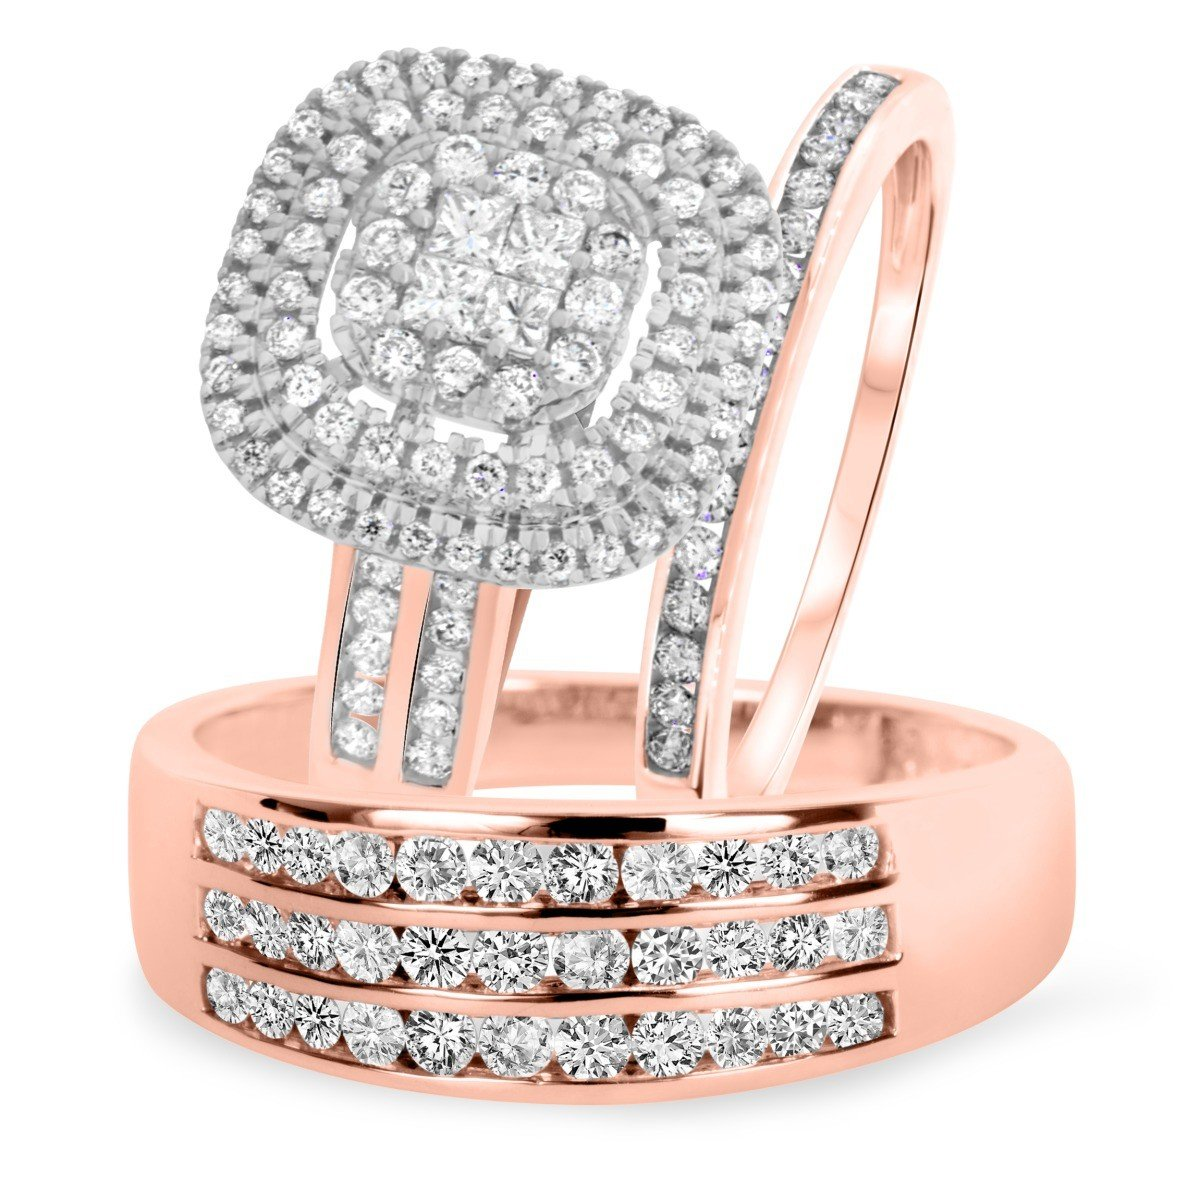 Smjewels 1 2/3 Ct Sim Diamond Men's & Women's Engagement Ring Trio Bridal Set 14K Rose Gold Fn